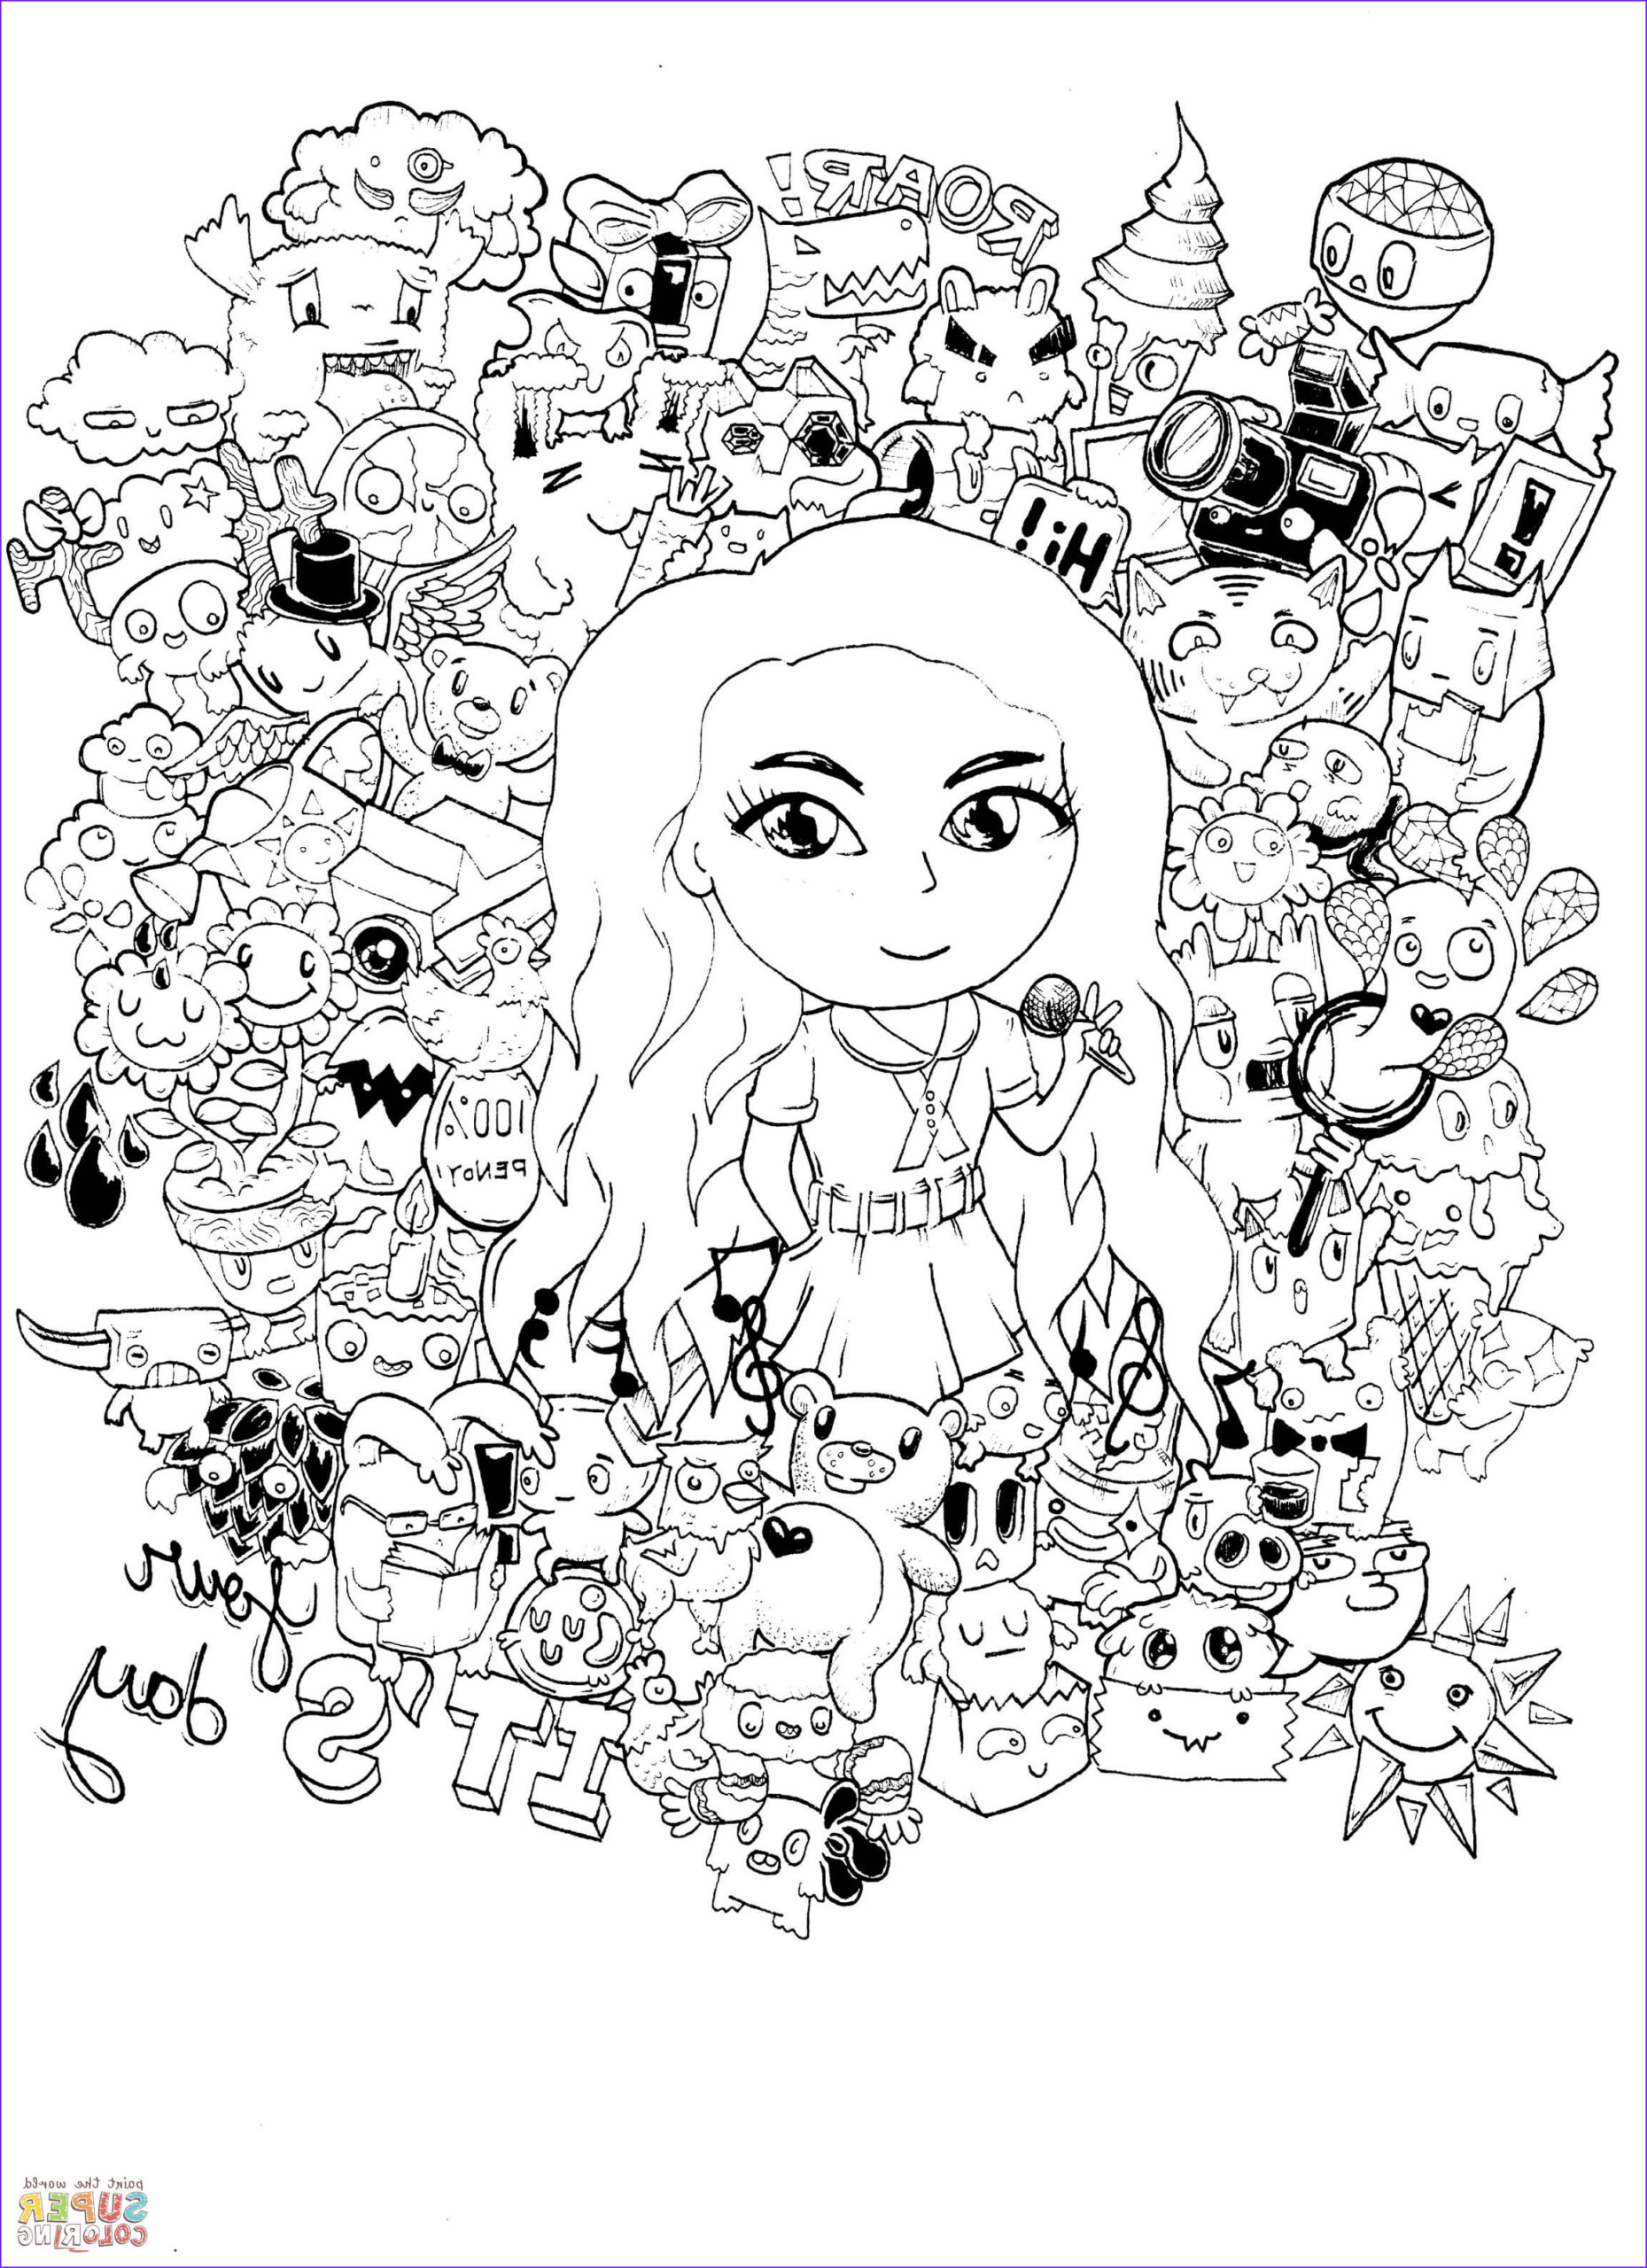 Doodle Coloring Pages Luxury Gallery Gorgeous Doodle by Kent Sunglao Coloring Page